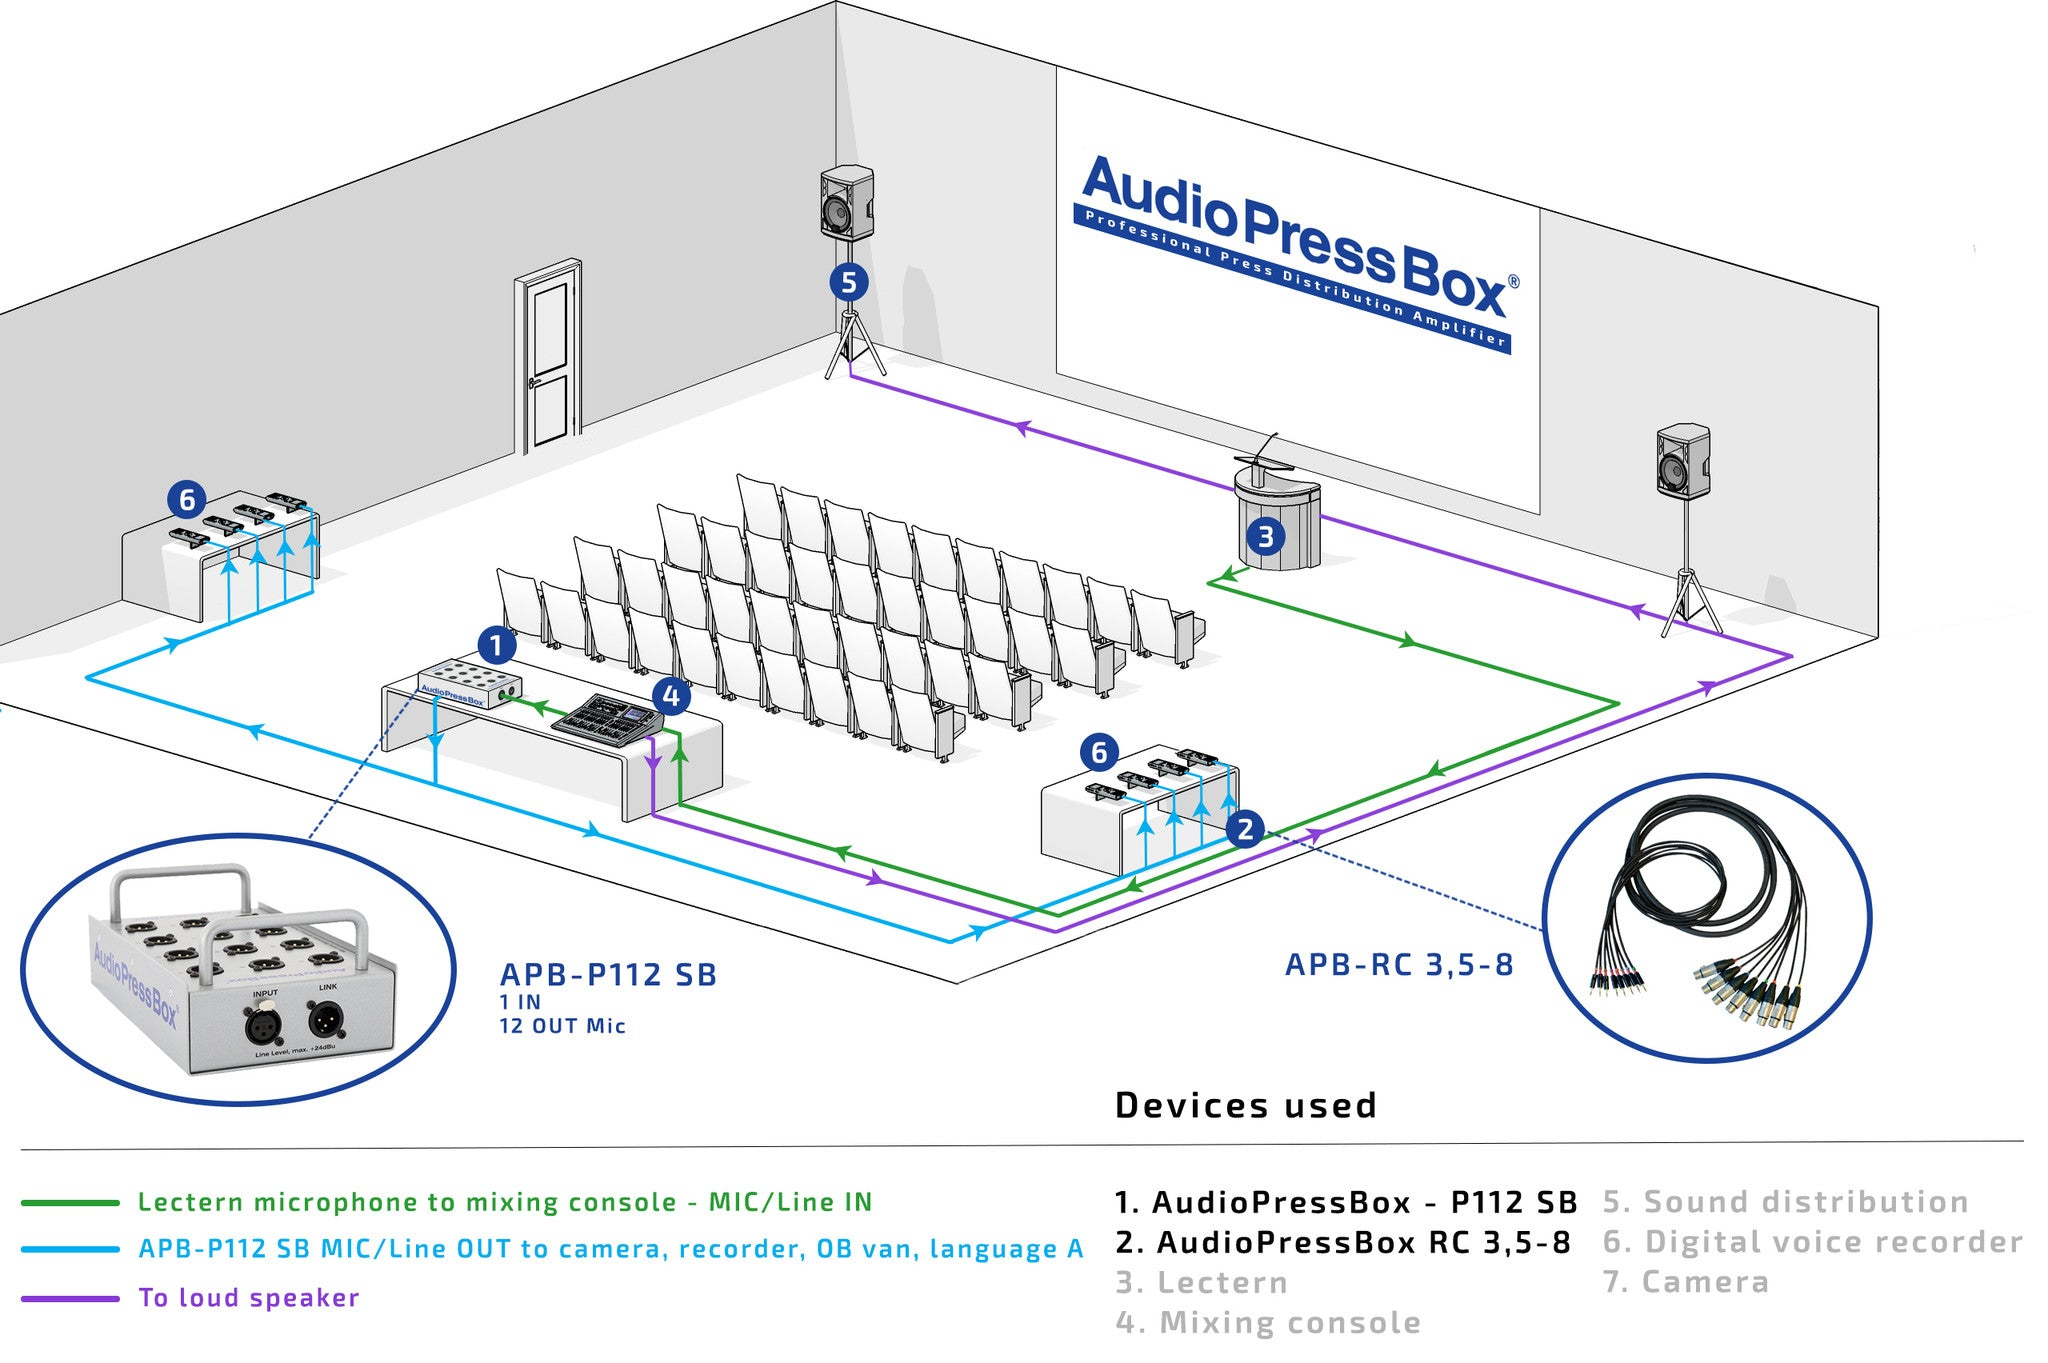 AudioPressBox, Mult Box, PressBox, Mult Box, Press Patch Box, Pressesplitter, APB-P112 SB